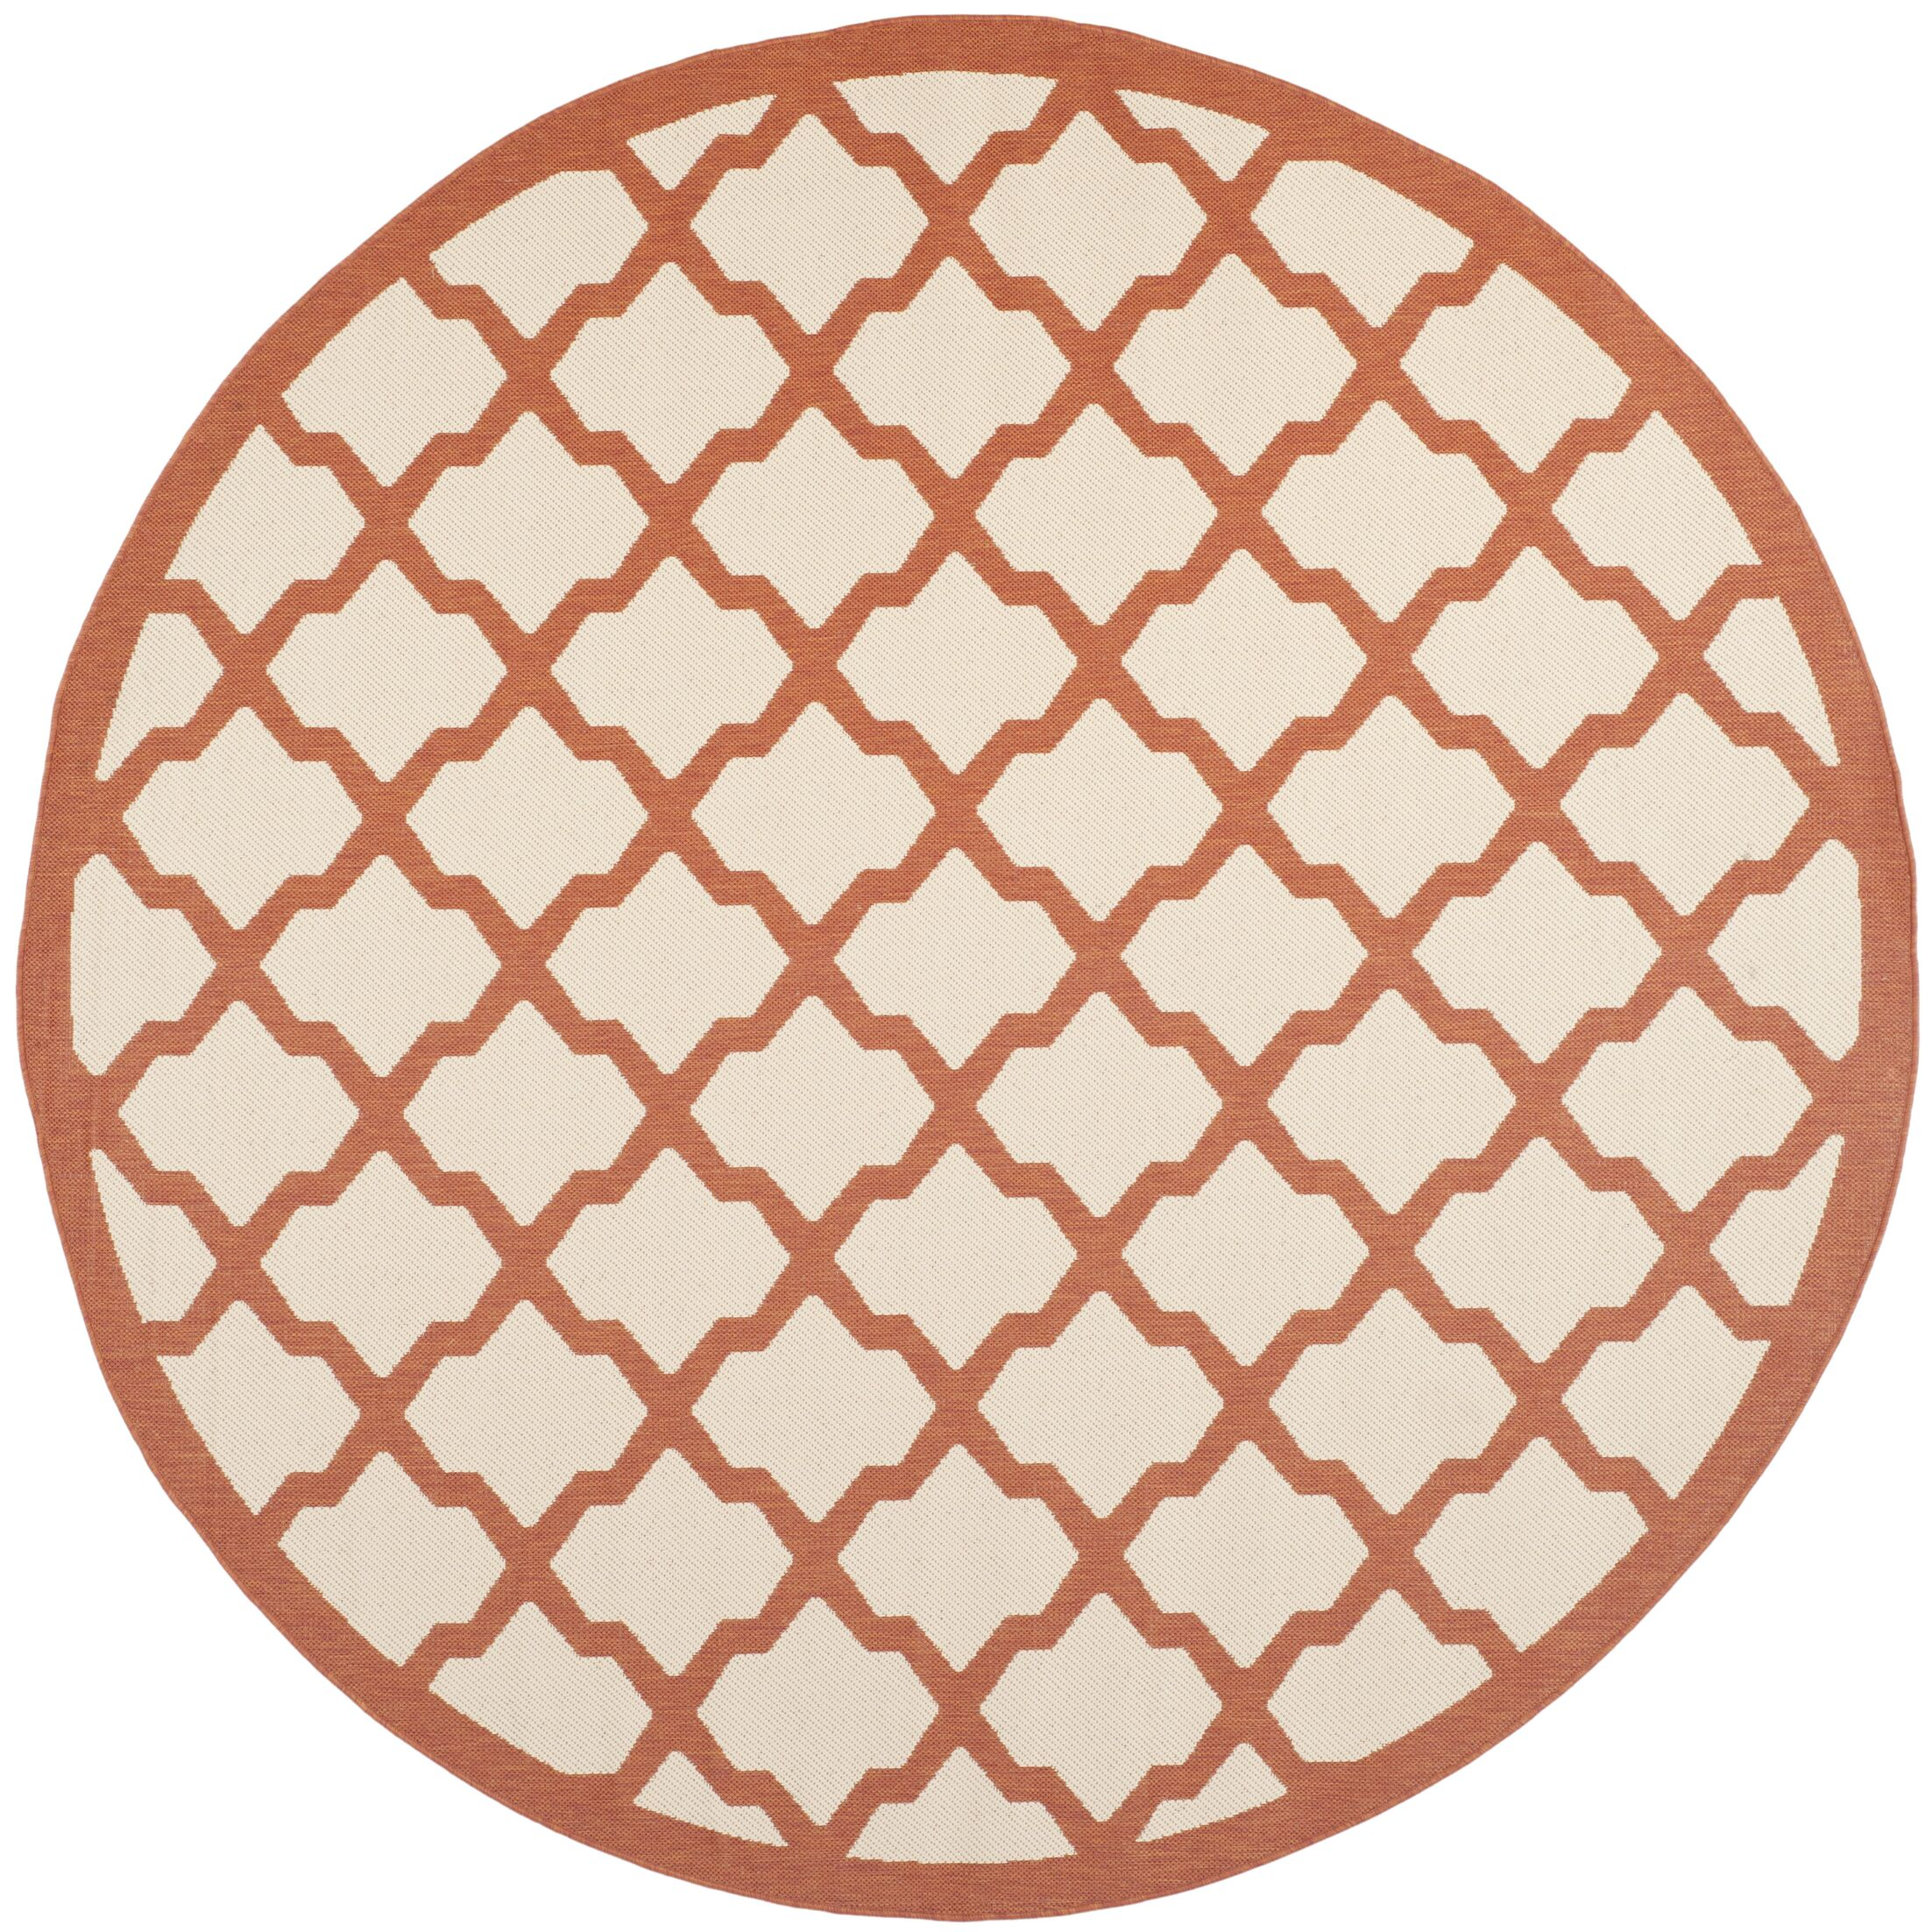 Short Beige/Terracotta Indoor/Outdoor Area Rug Rug Size: Round 7'10